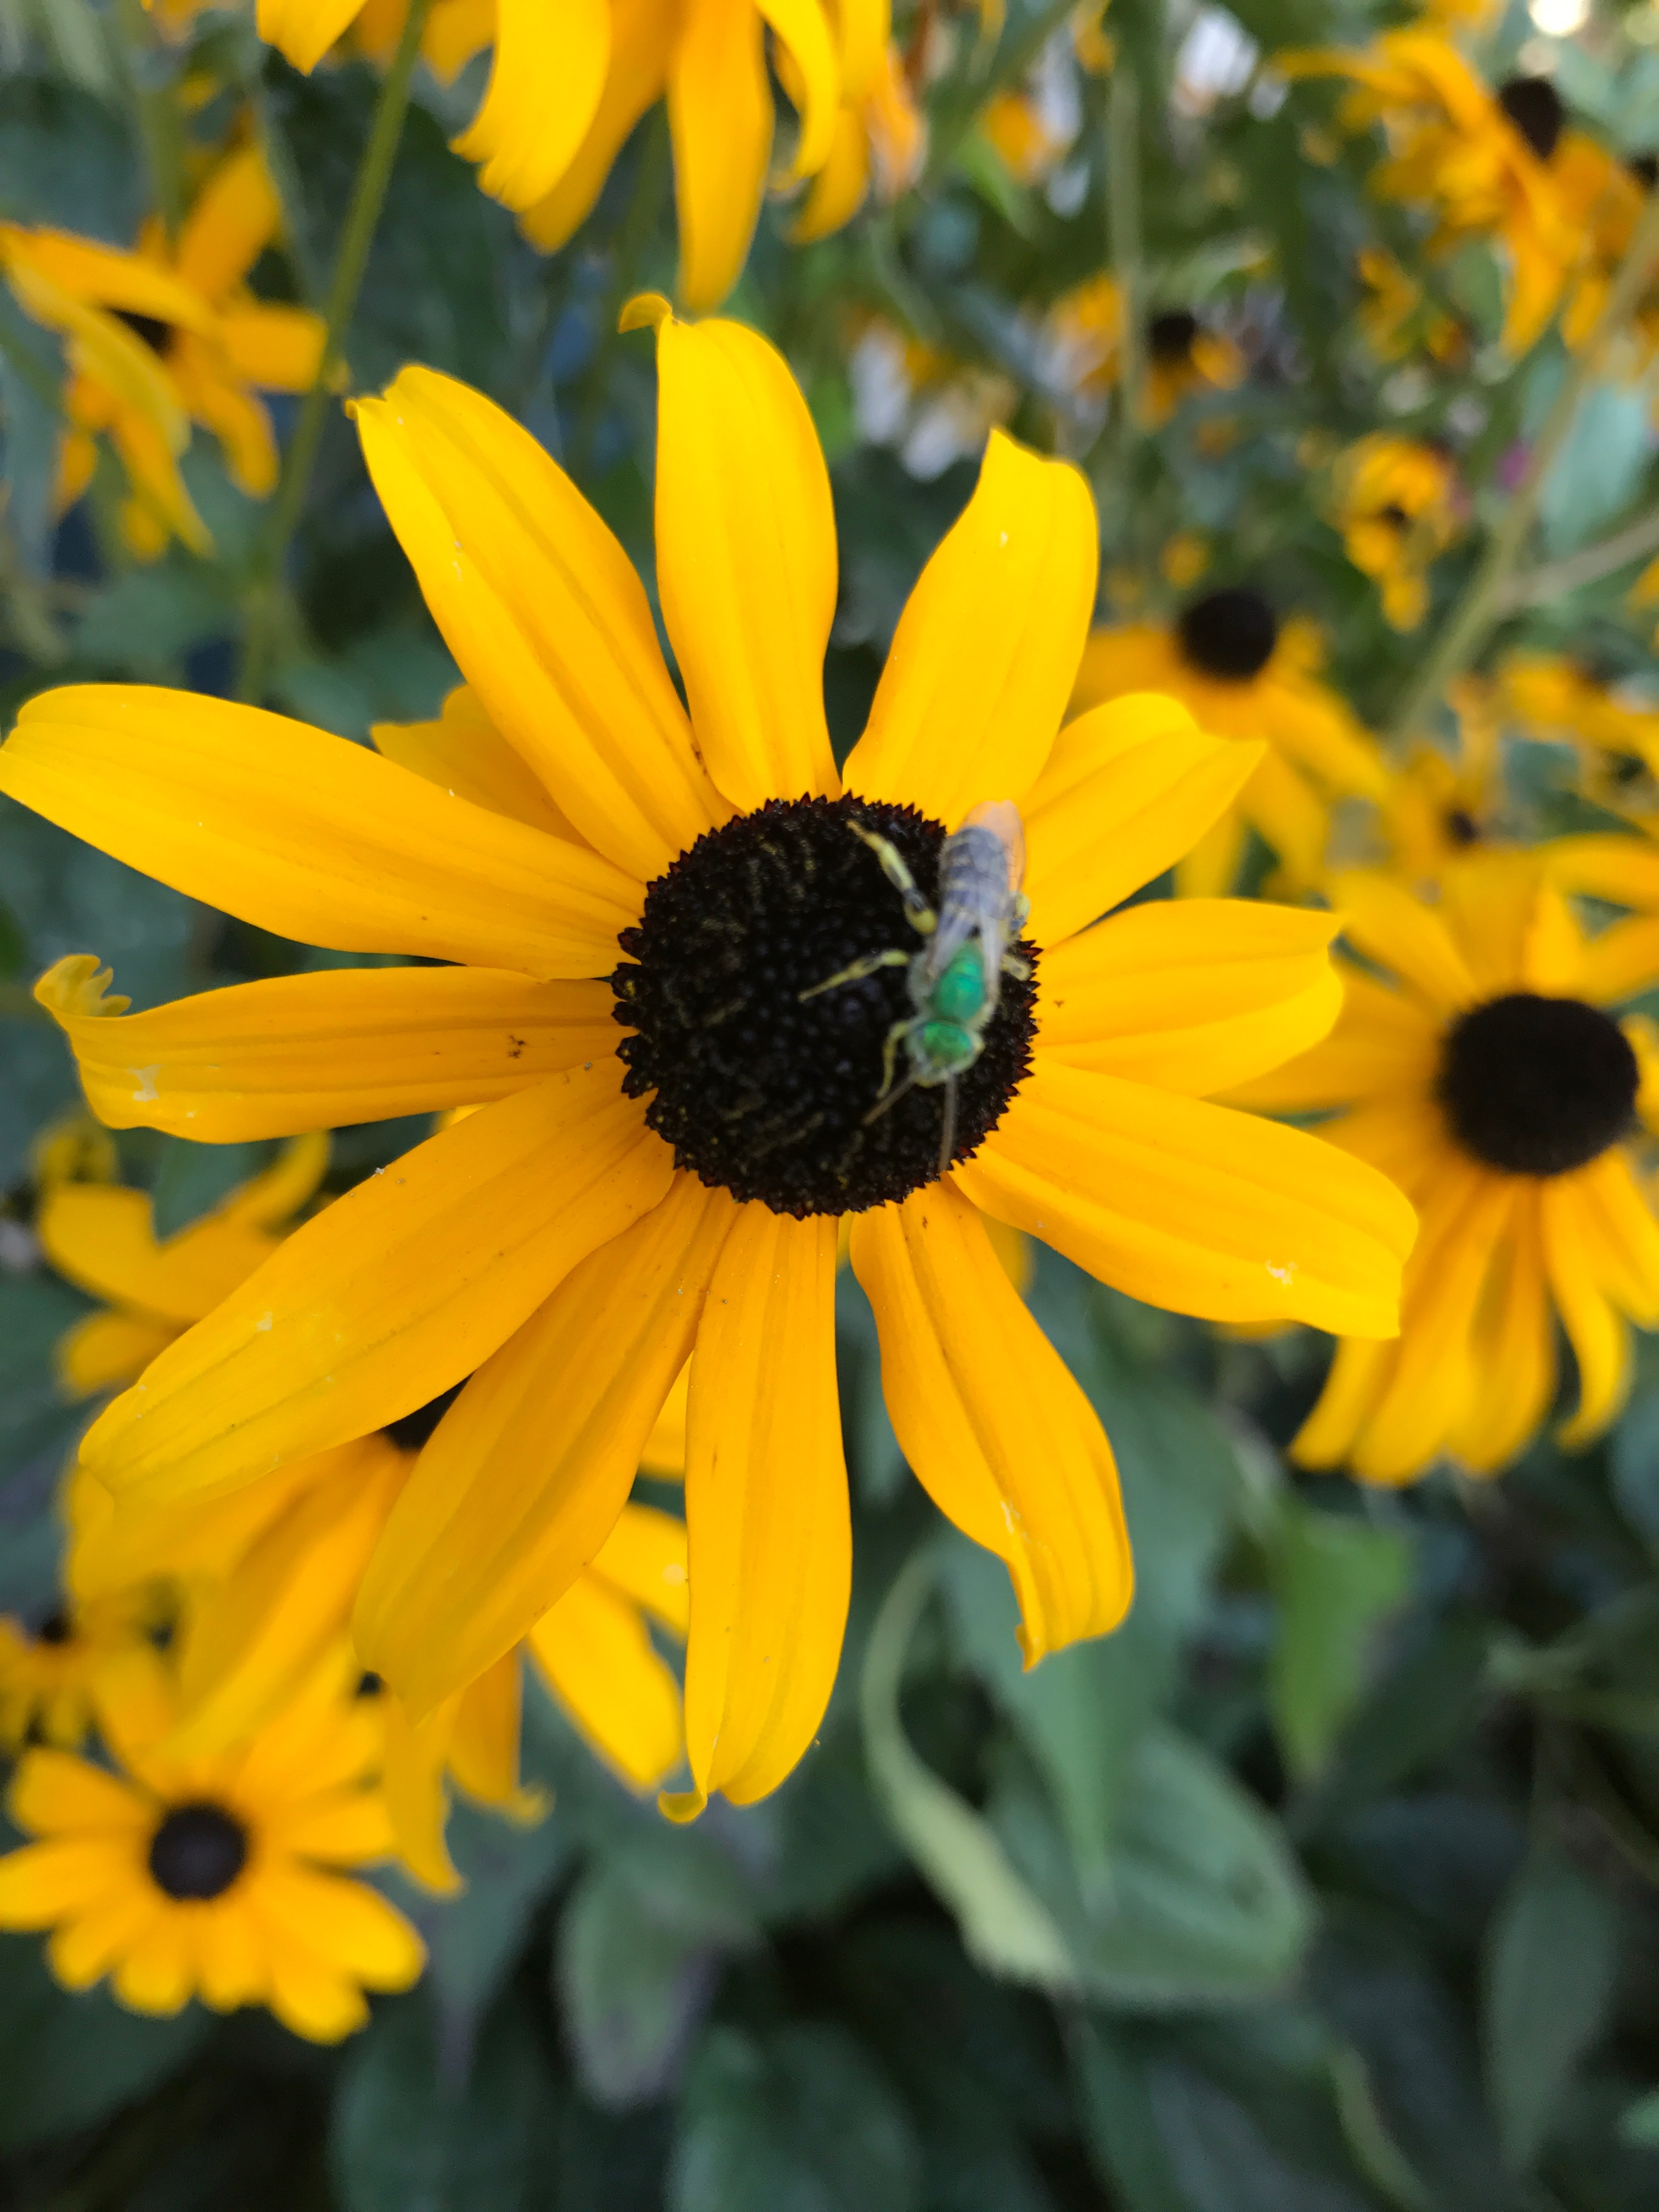 Close-up of an Agapostemon on rudbeckia.